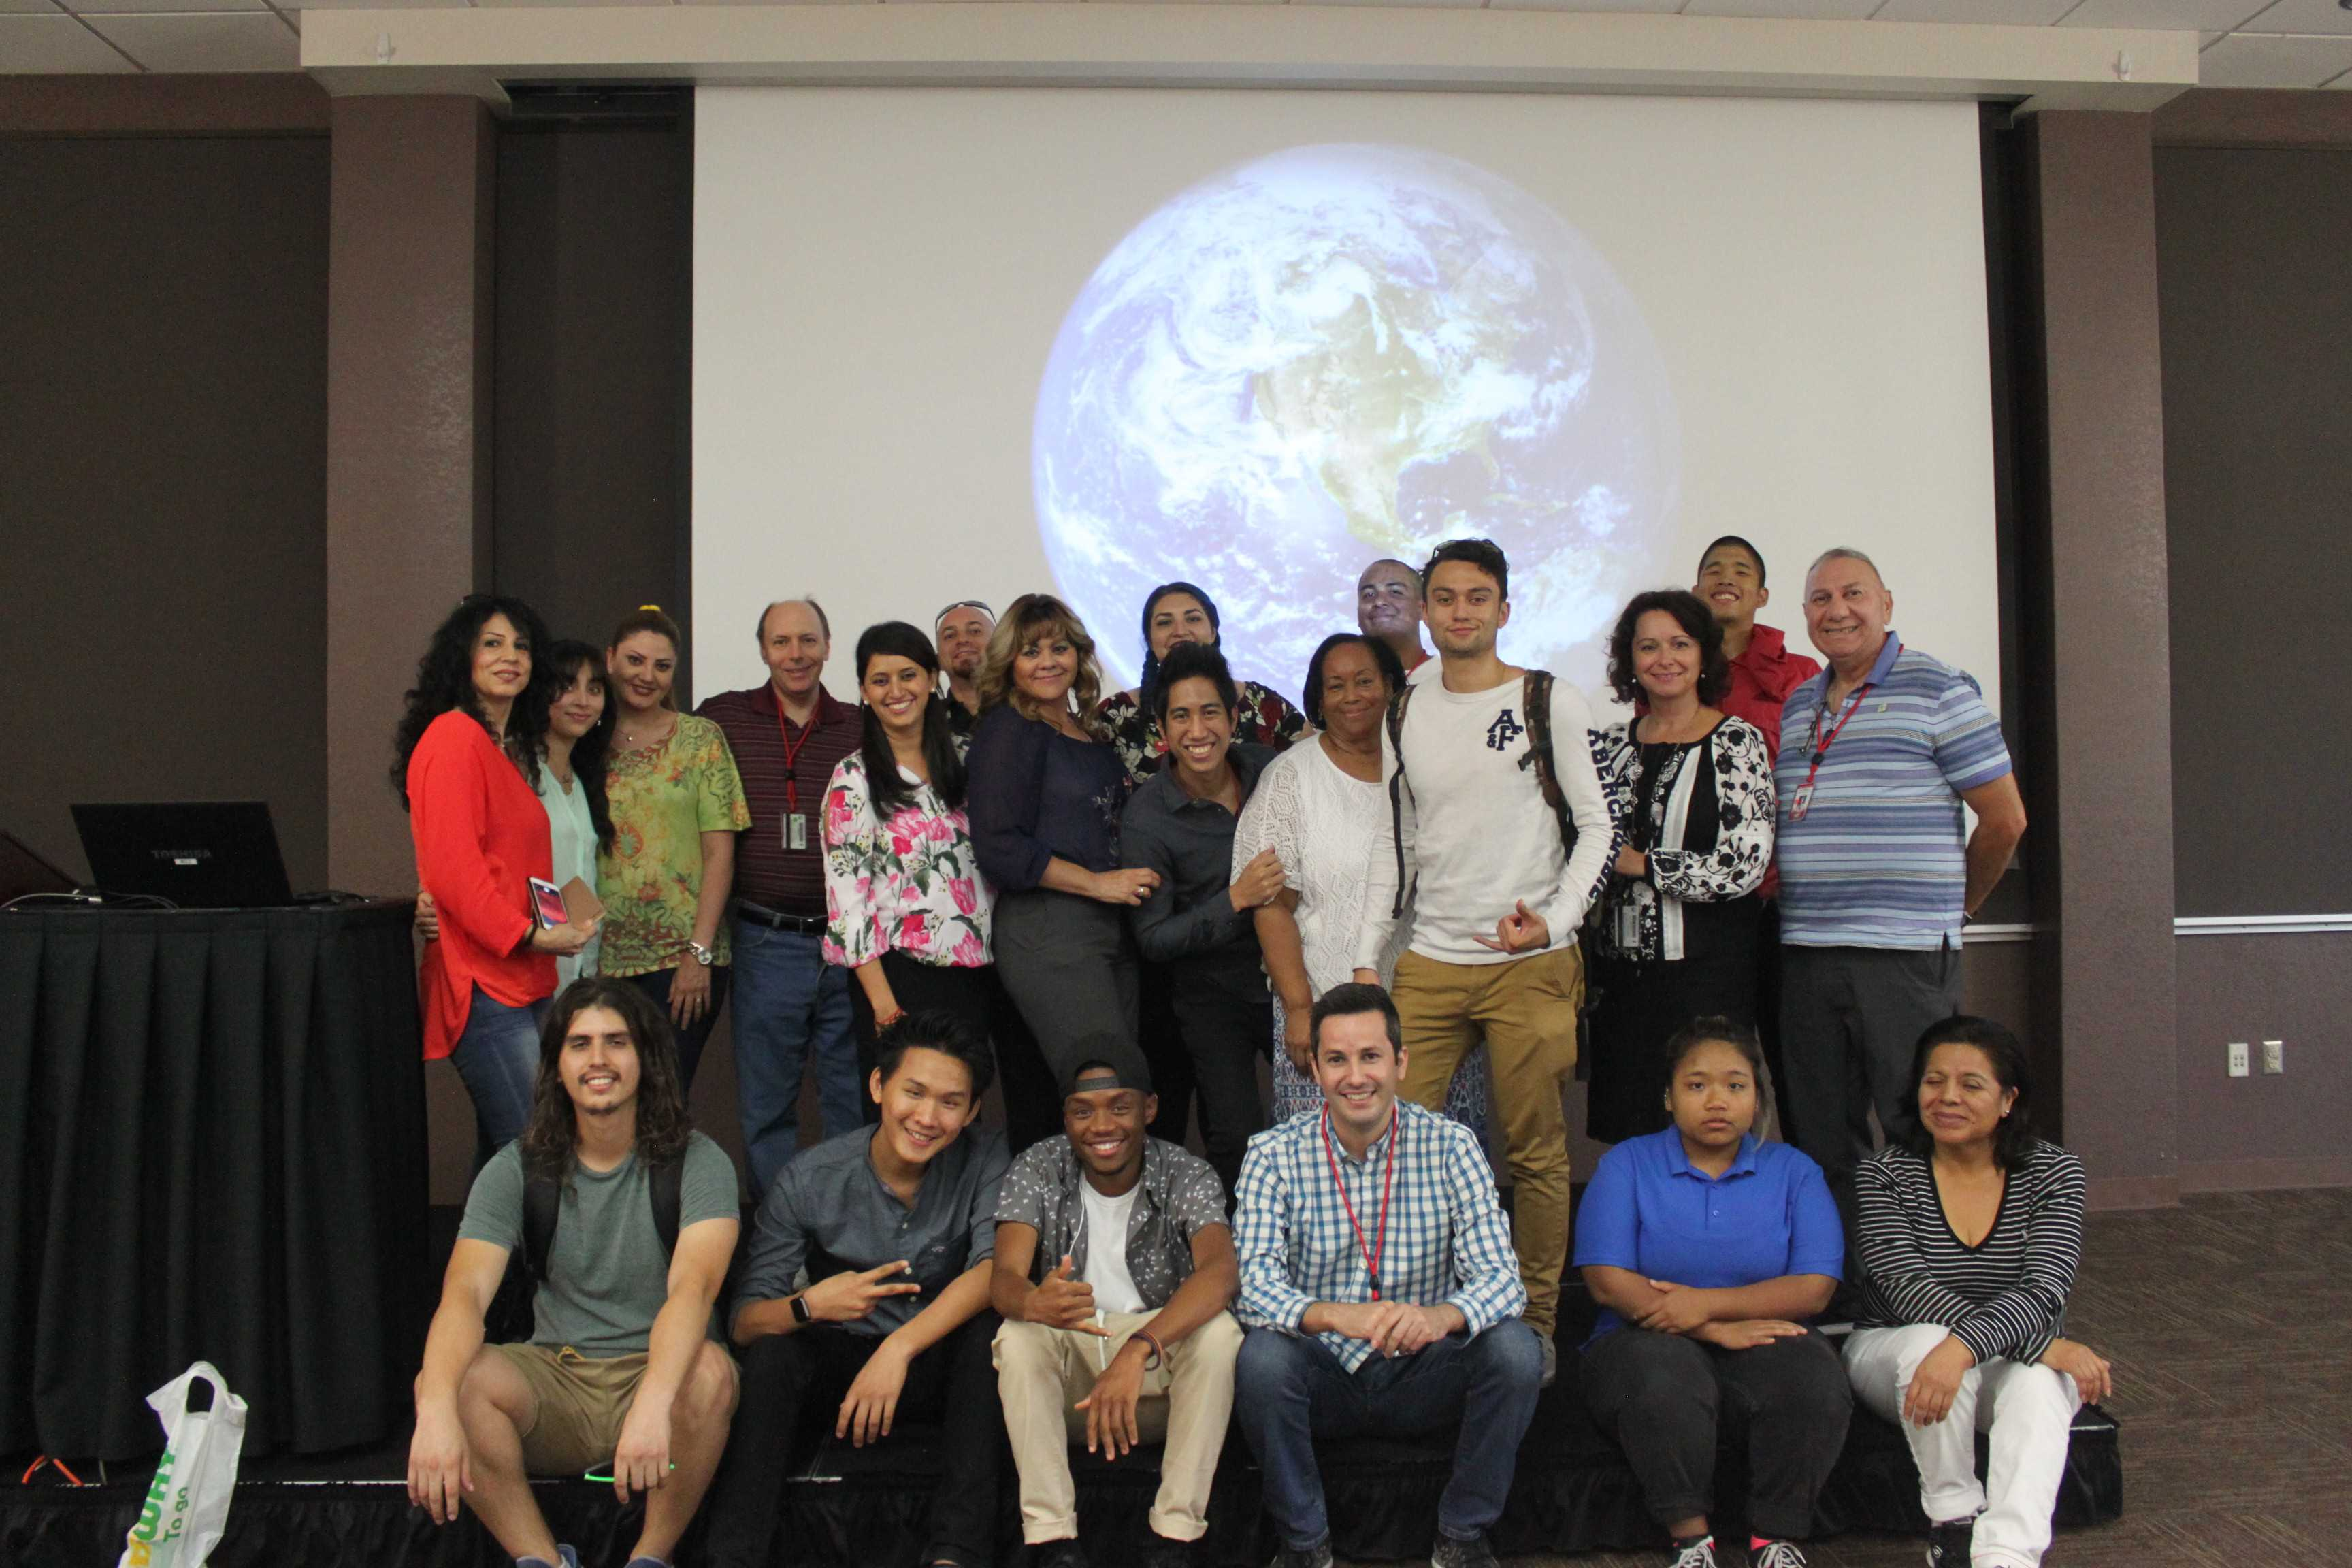 Members of International Club gathered together to share stories, food and laughs.